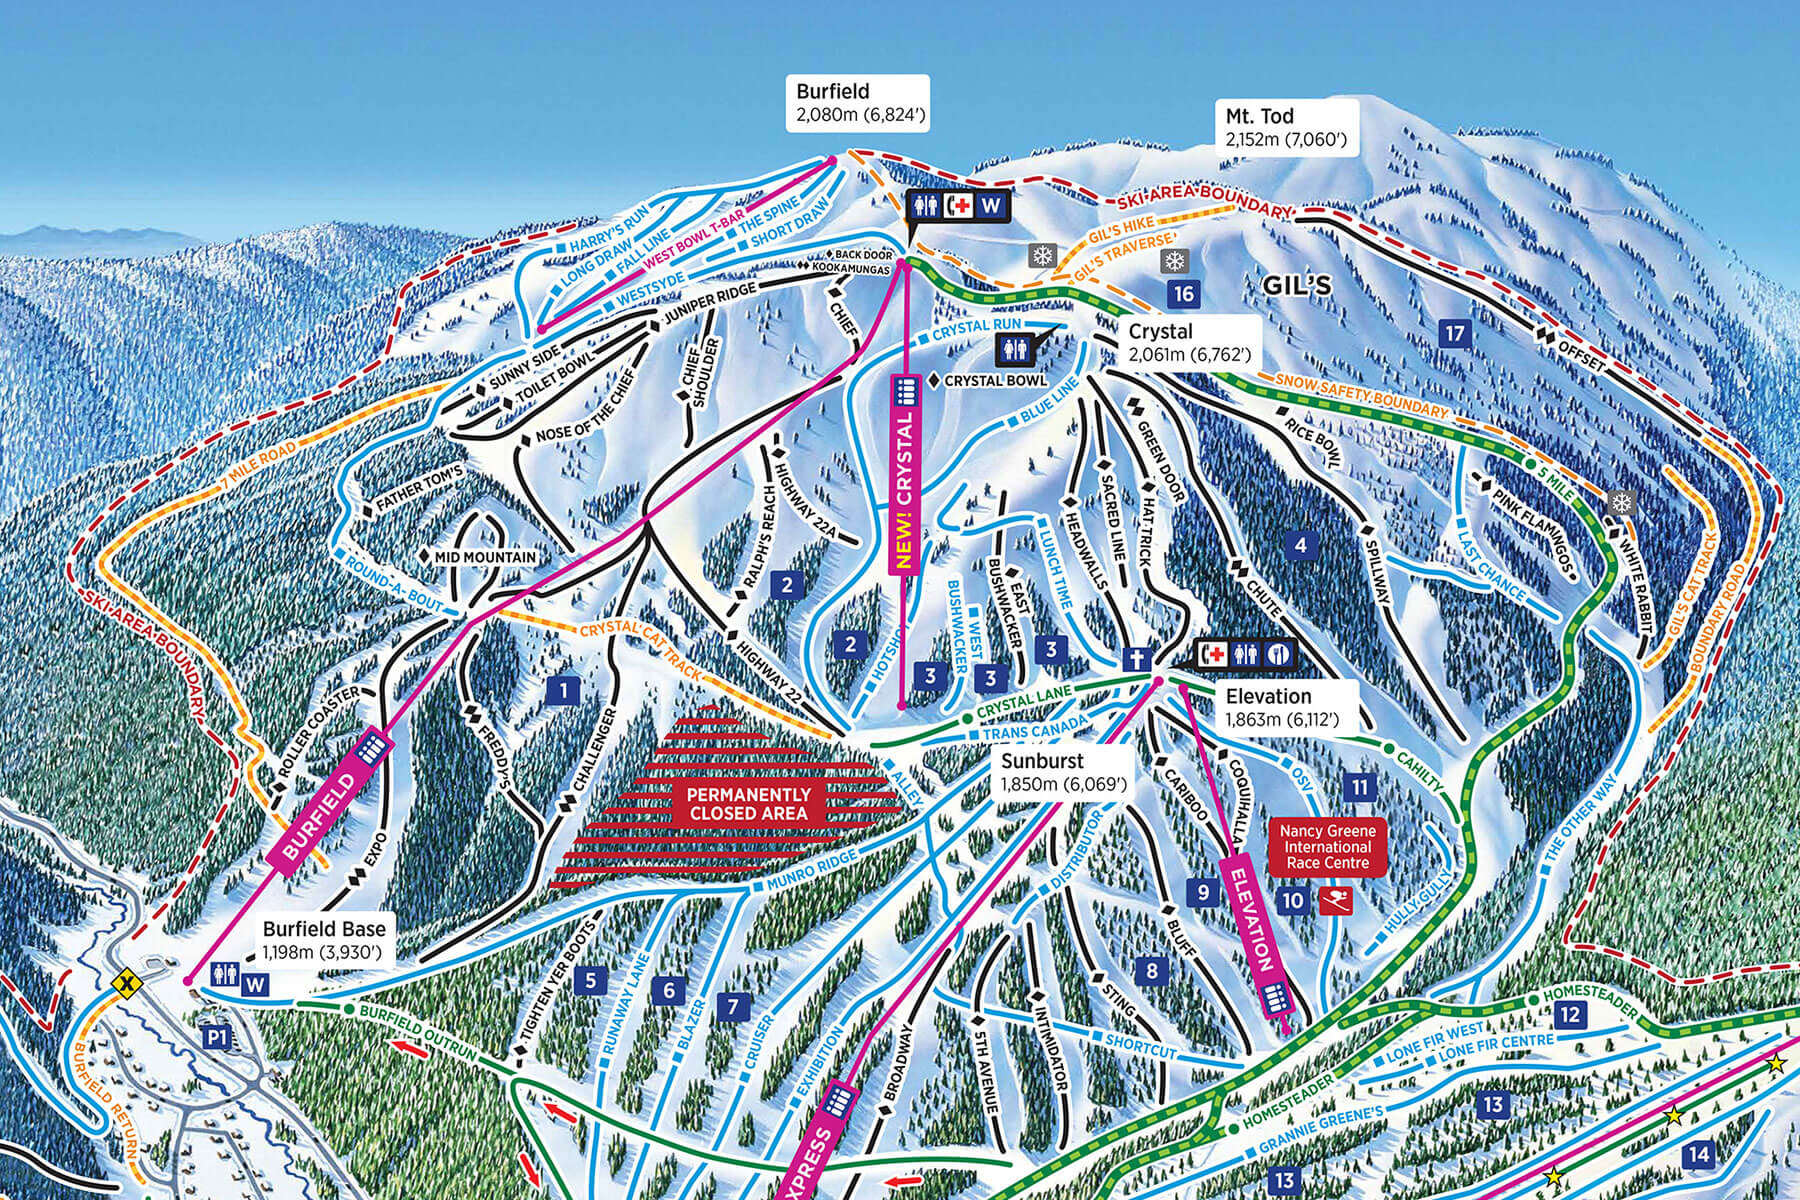 Crystal chairlift replacement to be complete for the 2020/21 winter season.